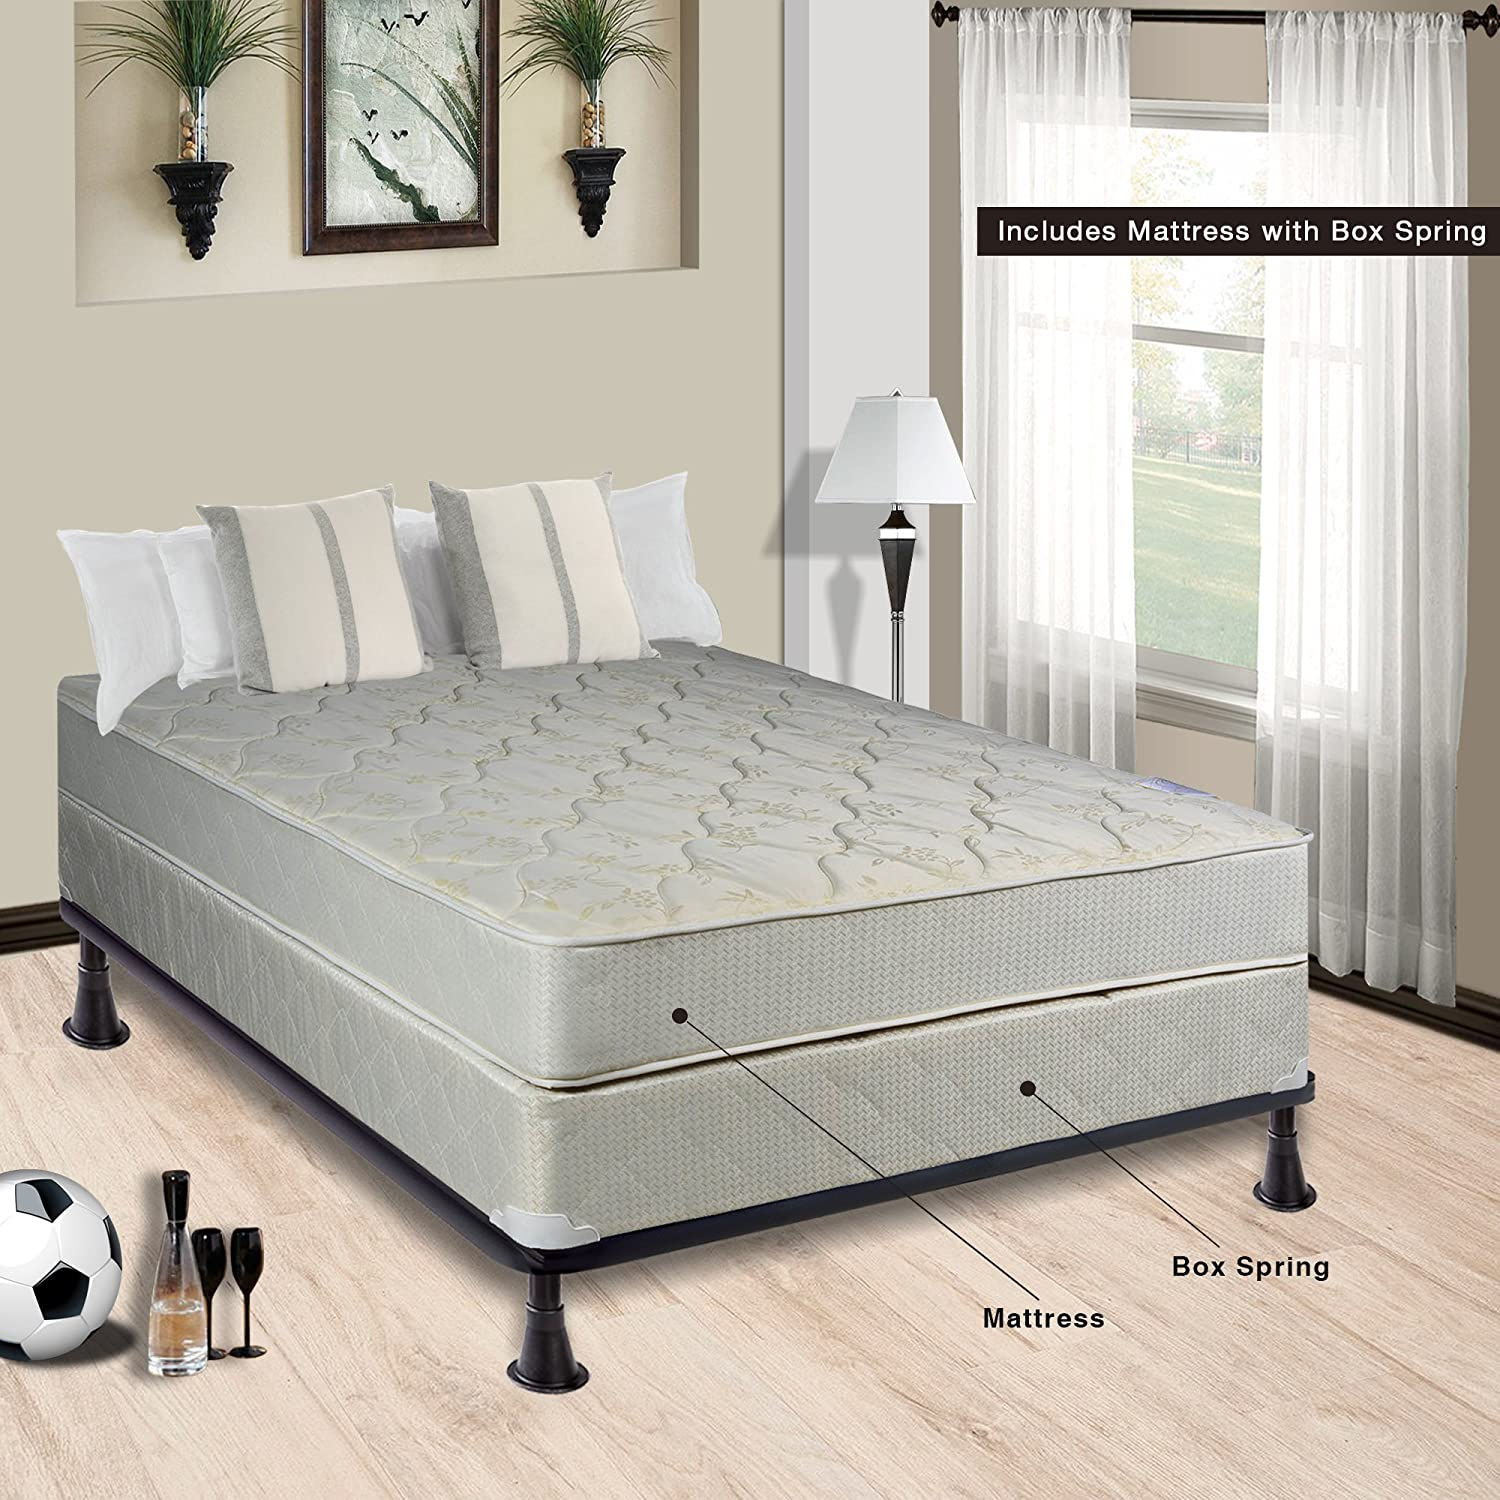 size box ip and queen spring sided mattress pillowtop walmart comfort bed double com set